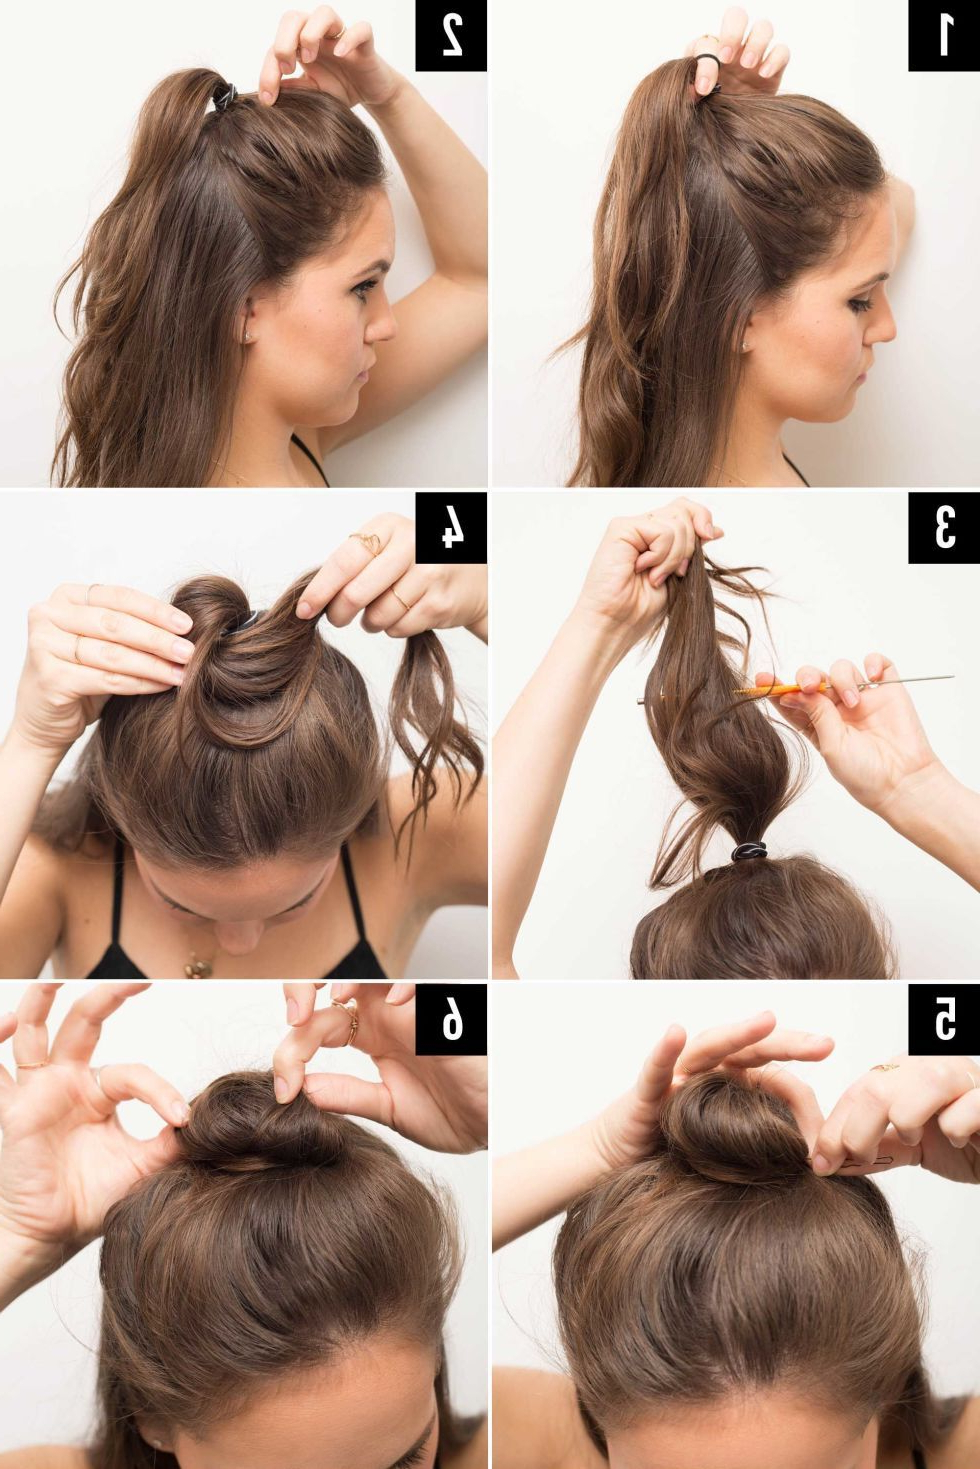 Trendy Simple Half Bun Hairstyles Inside 16 Genius Half Bun Hacks You Need To Know About (Gallery 2 of 20)